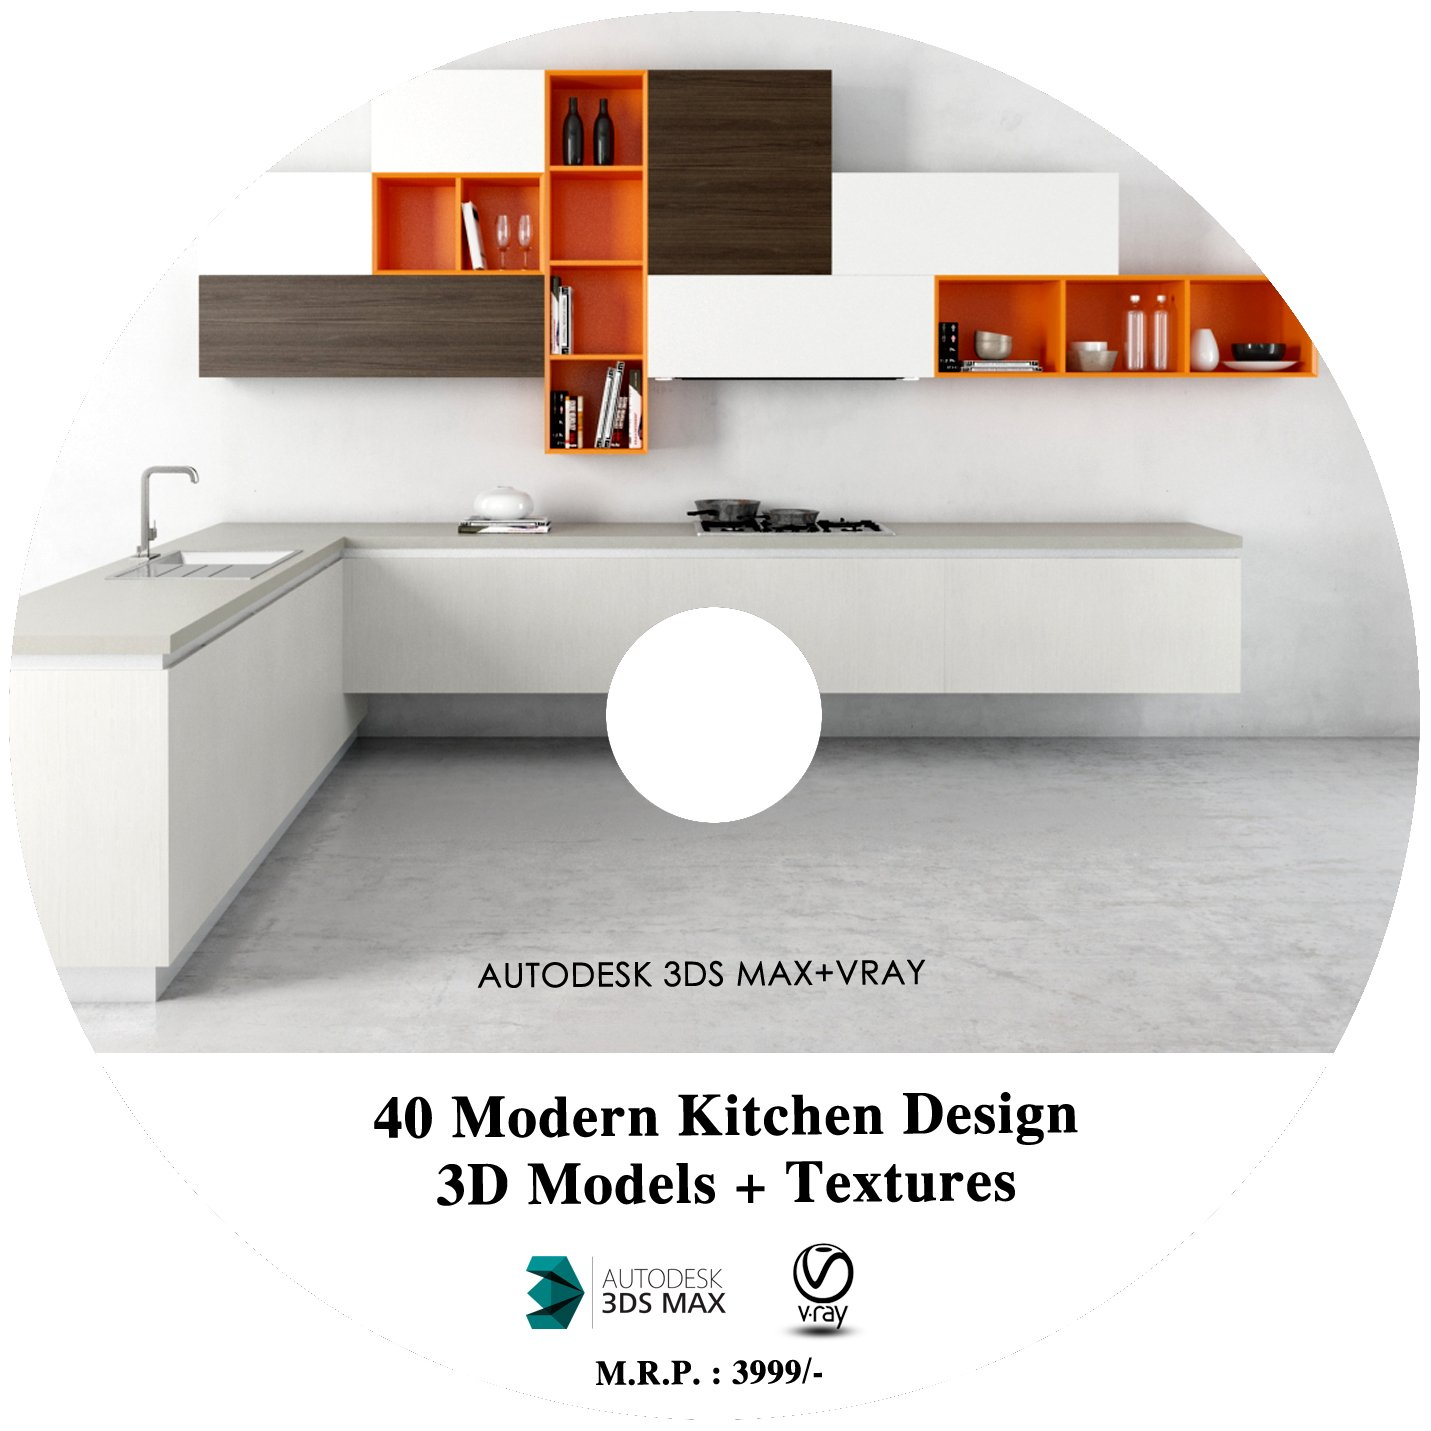 40 Modern Kitchen design 3D Models in 3DS Max + HD Textures